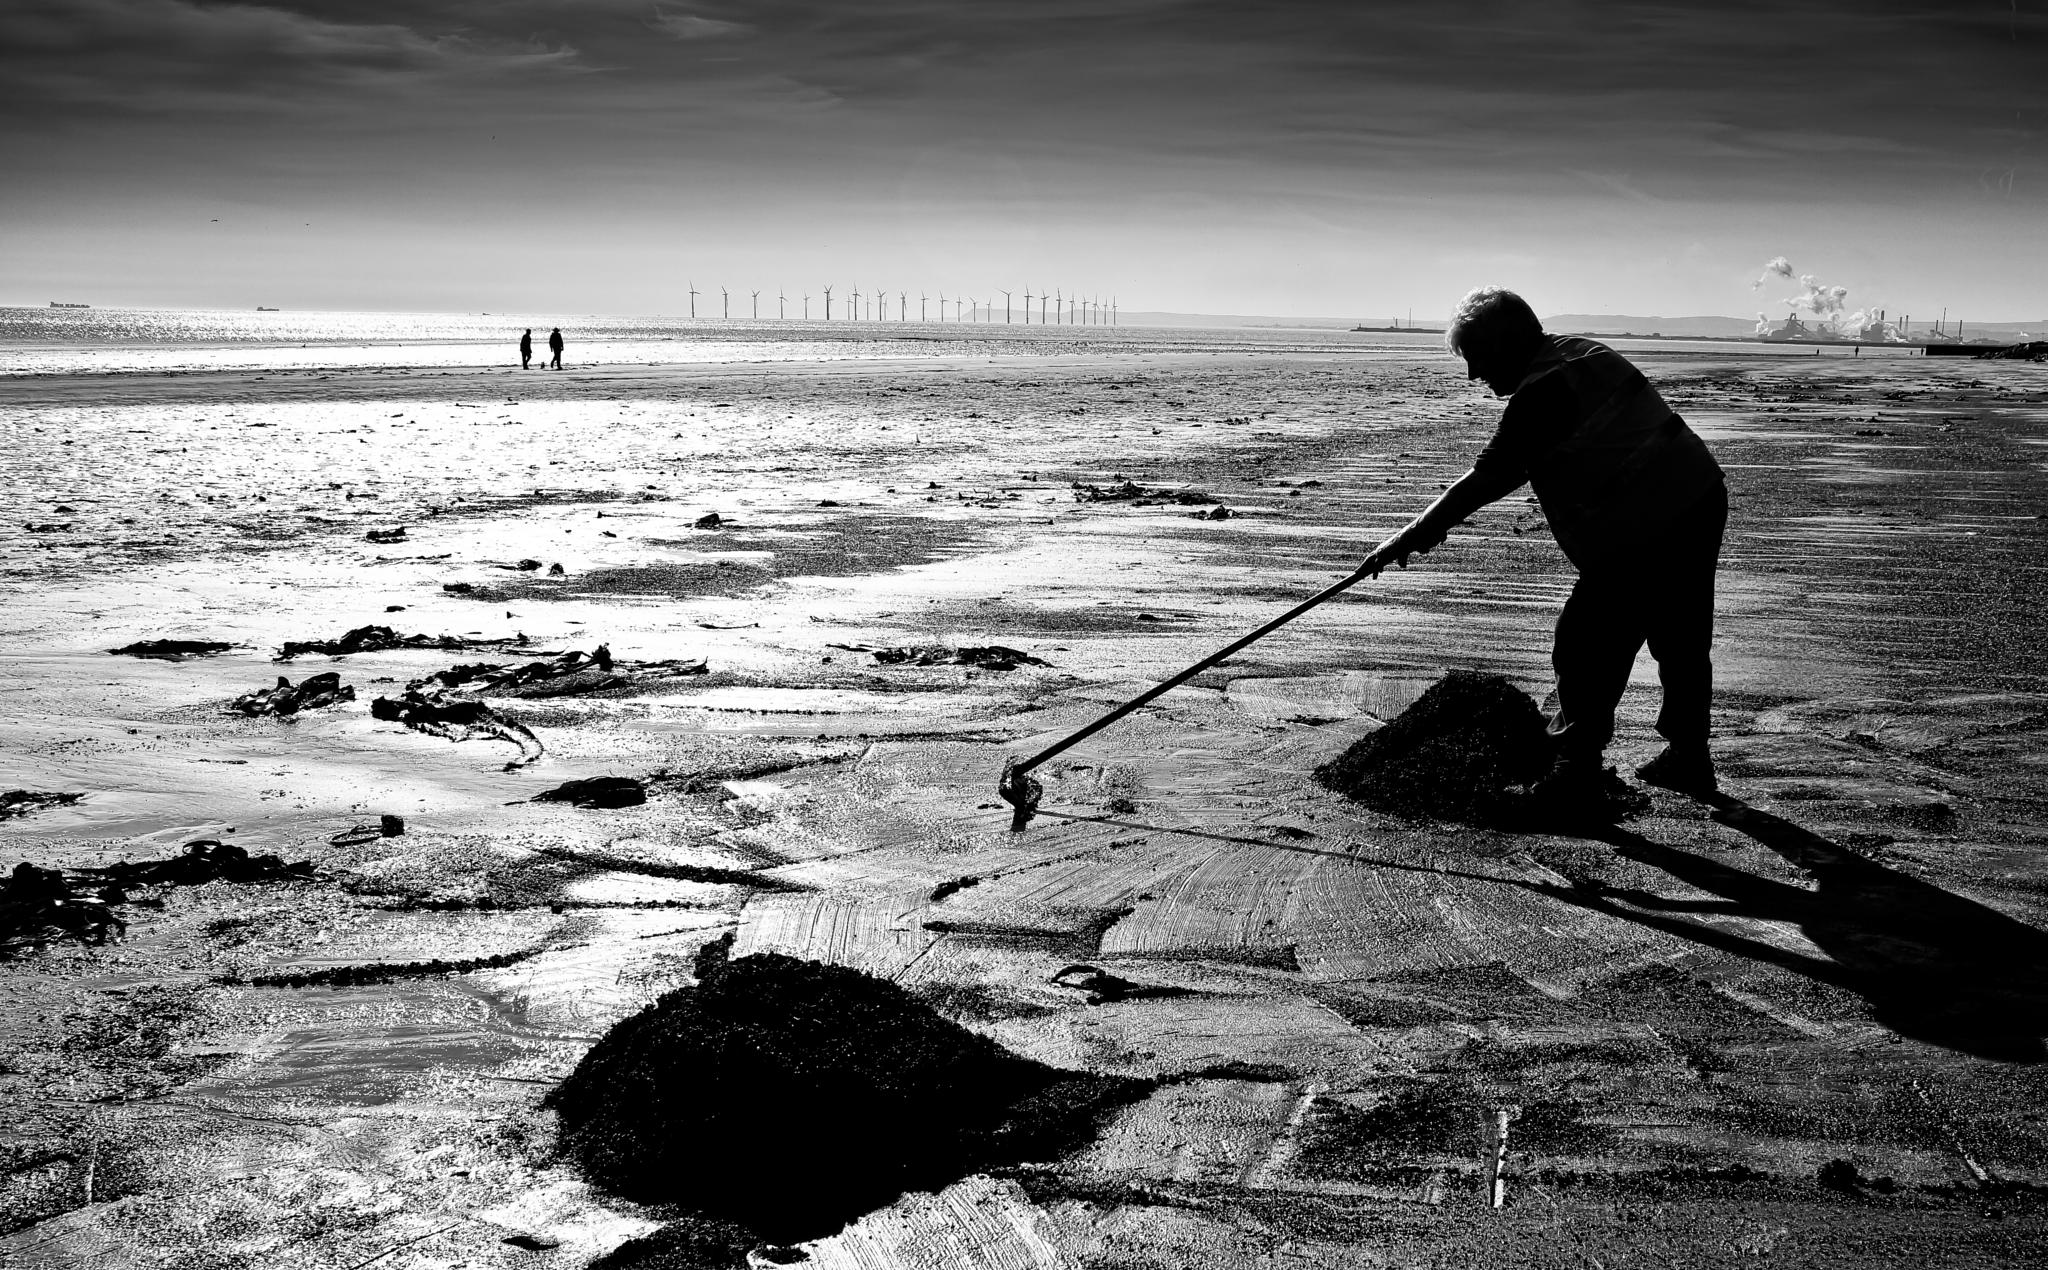 Collecting beach coal by Peter Edwardo Vicente.